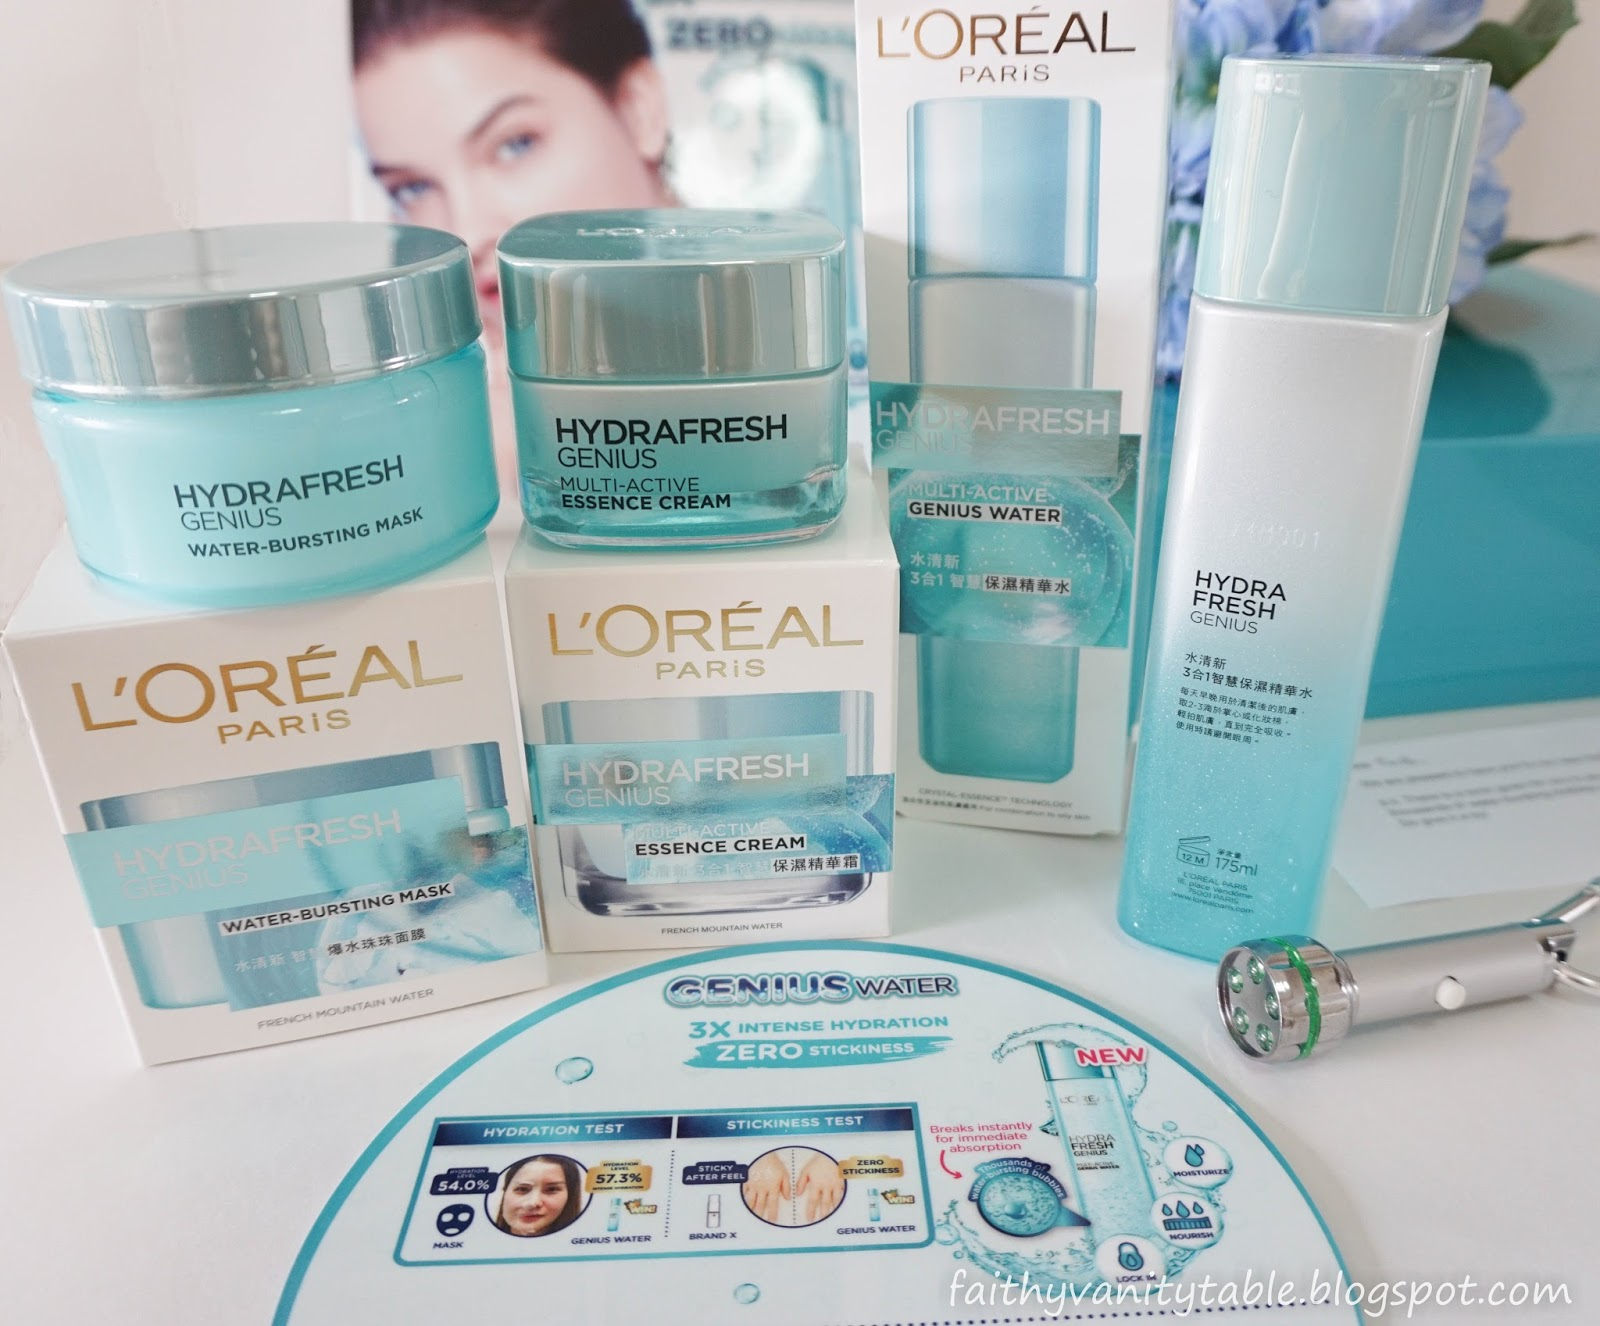 Singapore Beauty Travel And Lifestyle Blog Review Of Loral Paris L Oreal Makeup Micellar Water 250ml Blue Hydrafresh Genius